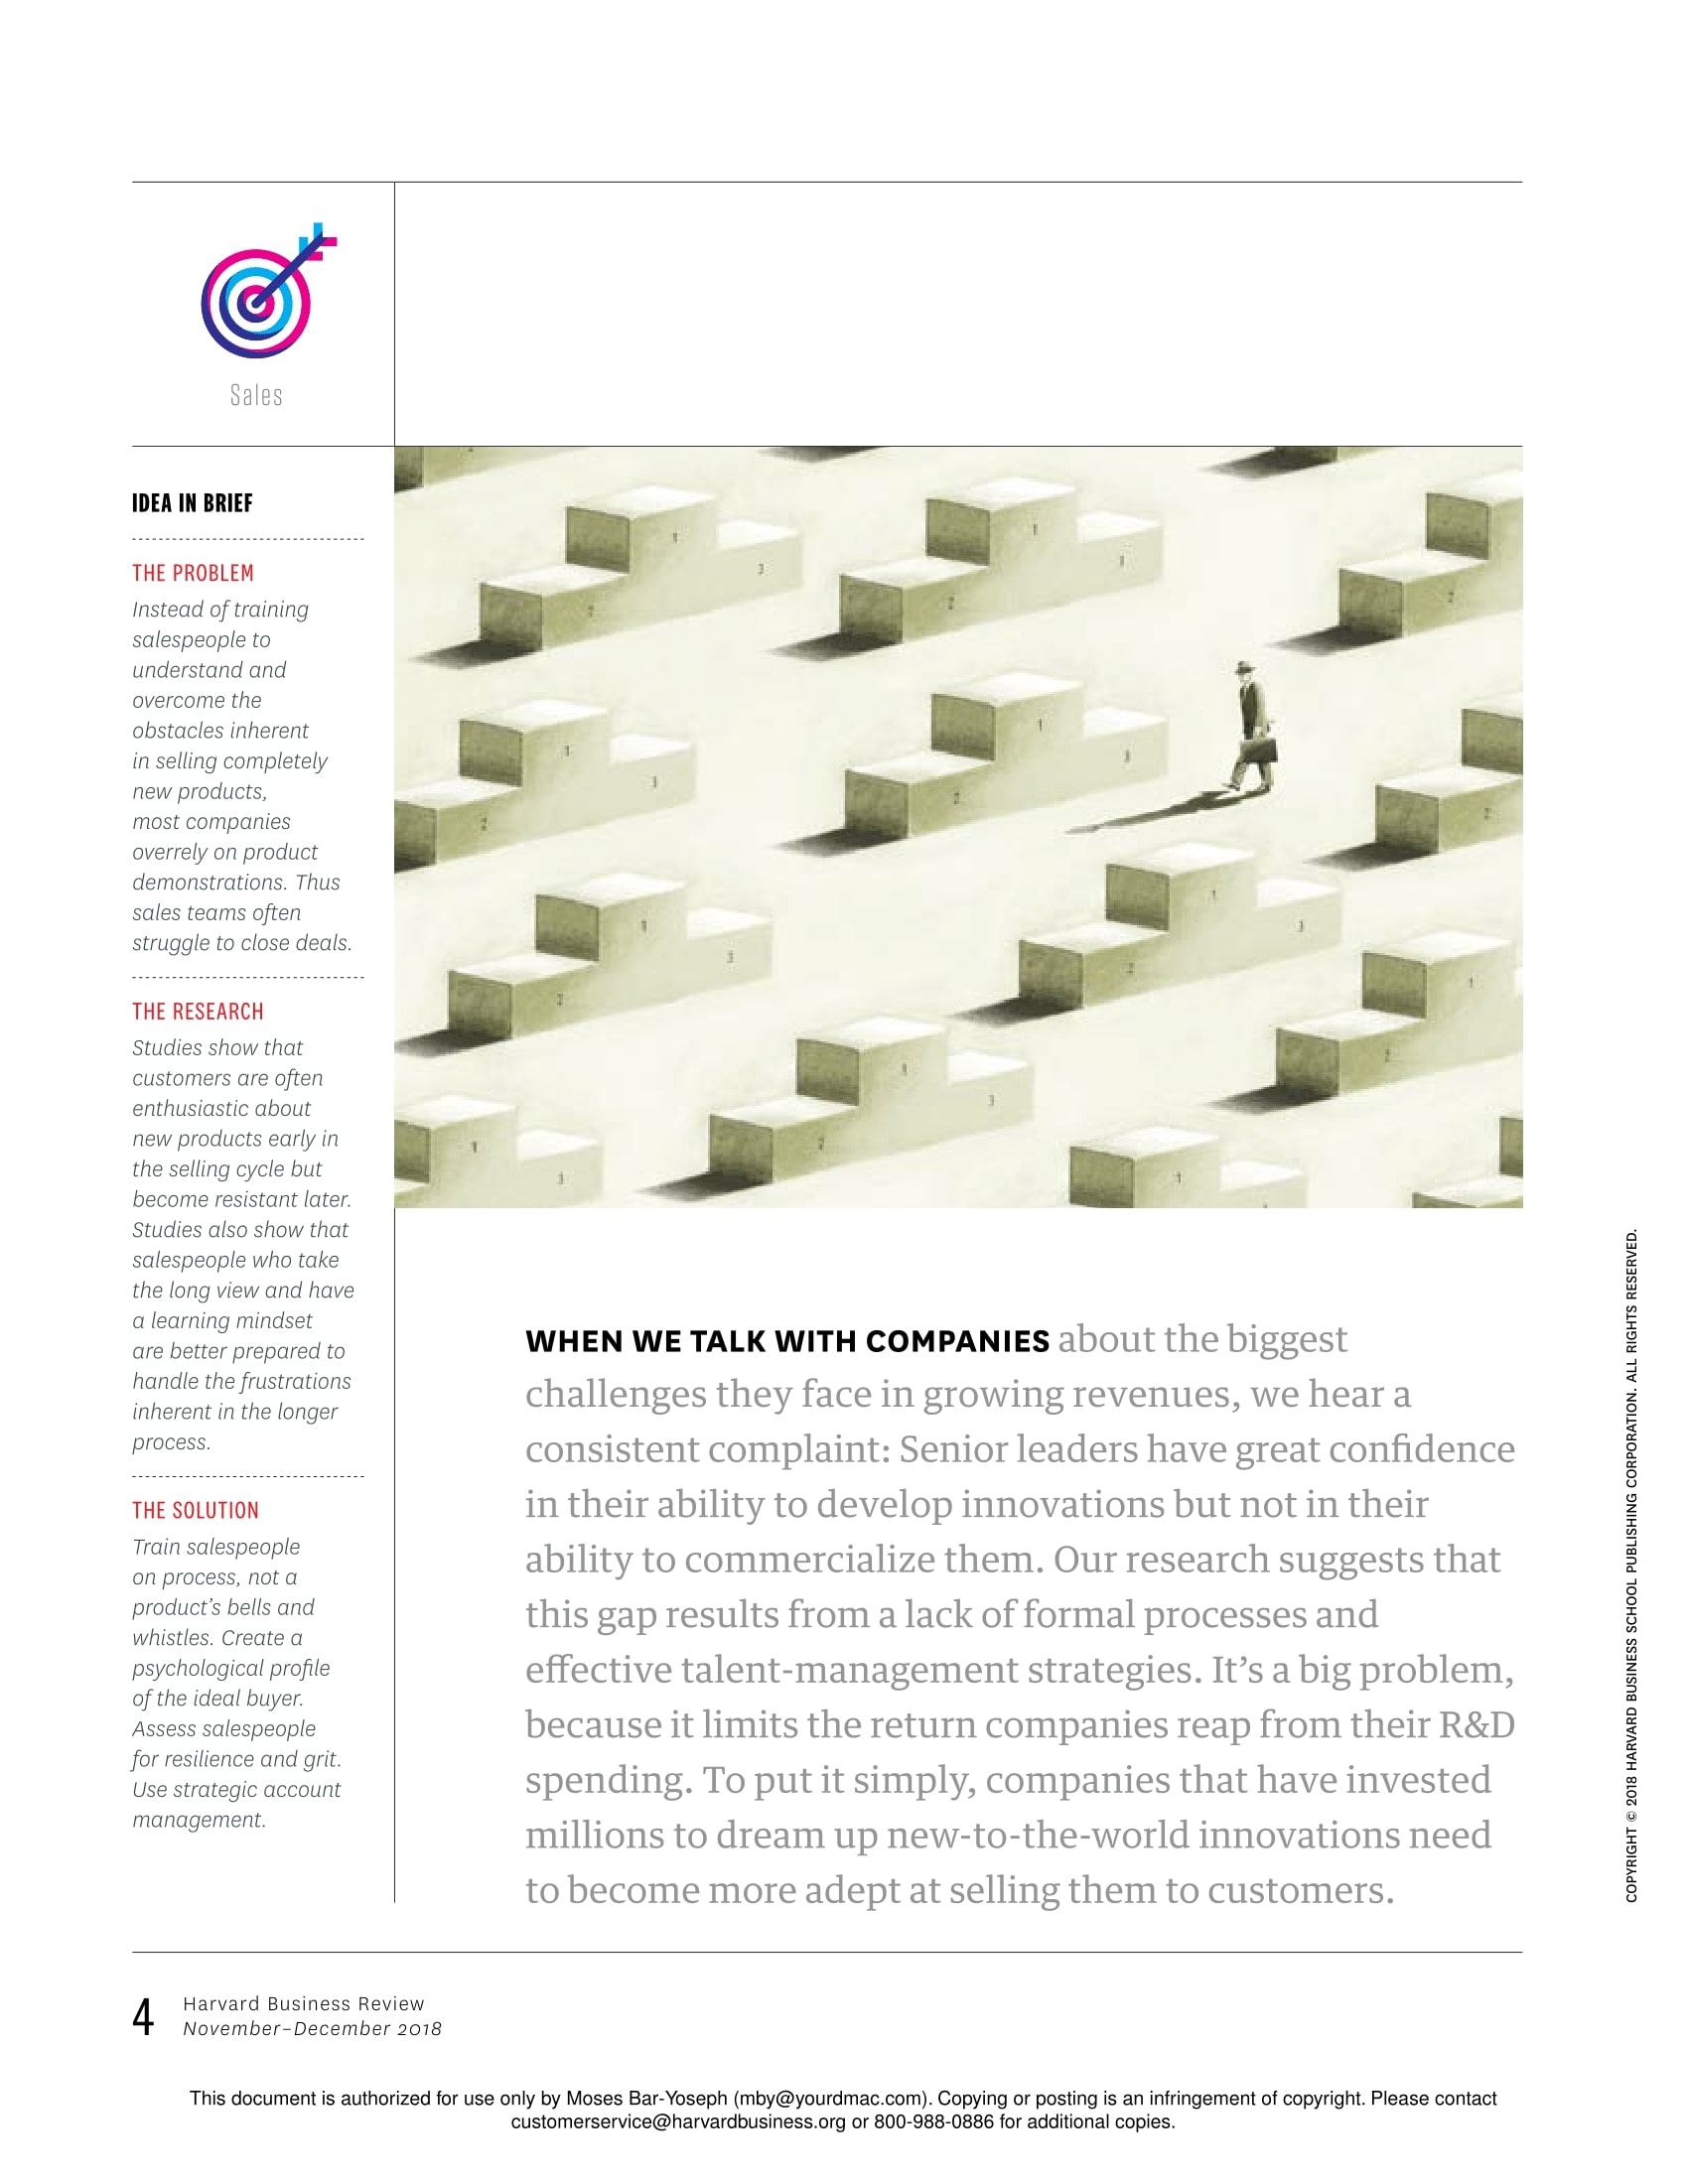 Harvard Business Review Article - yourDMAC